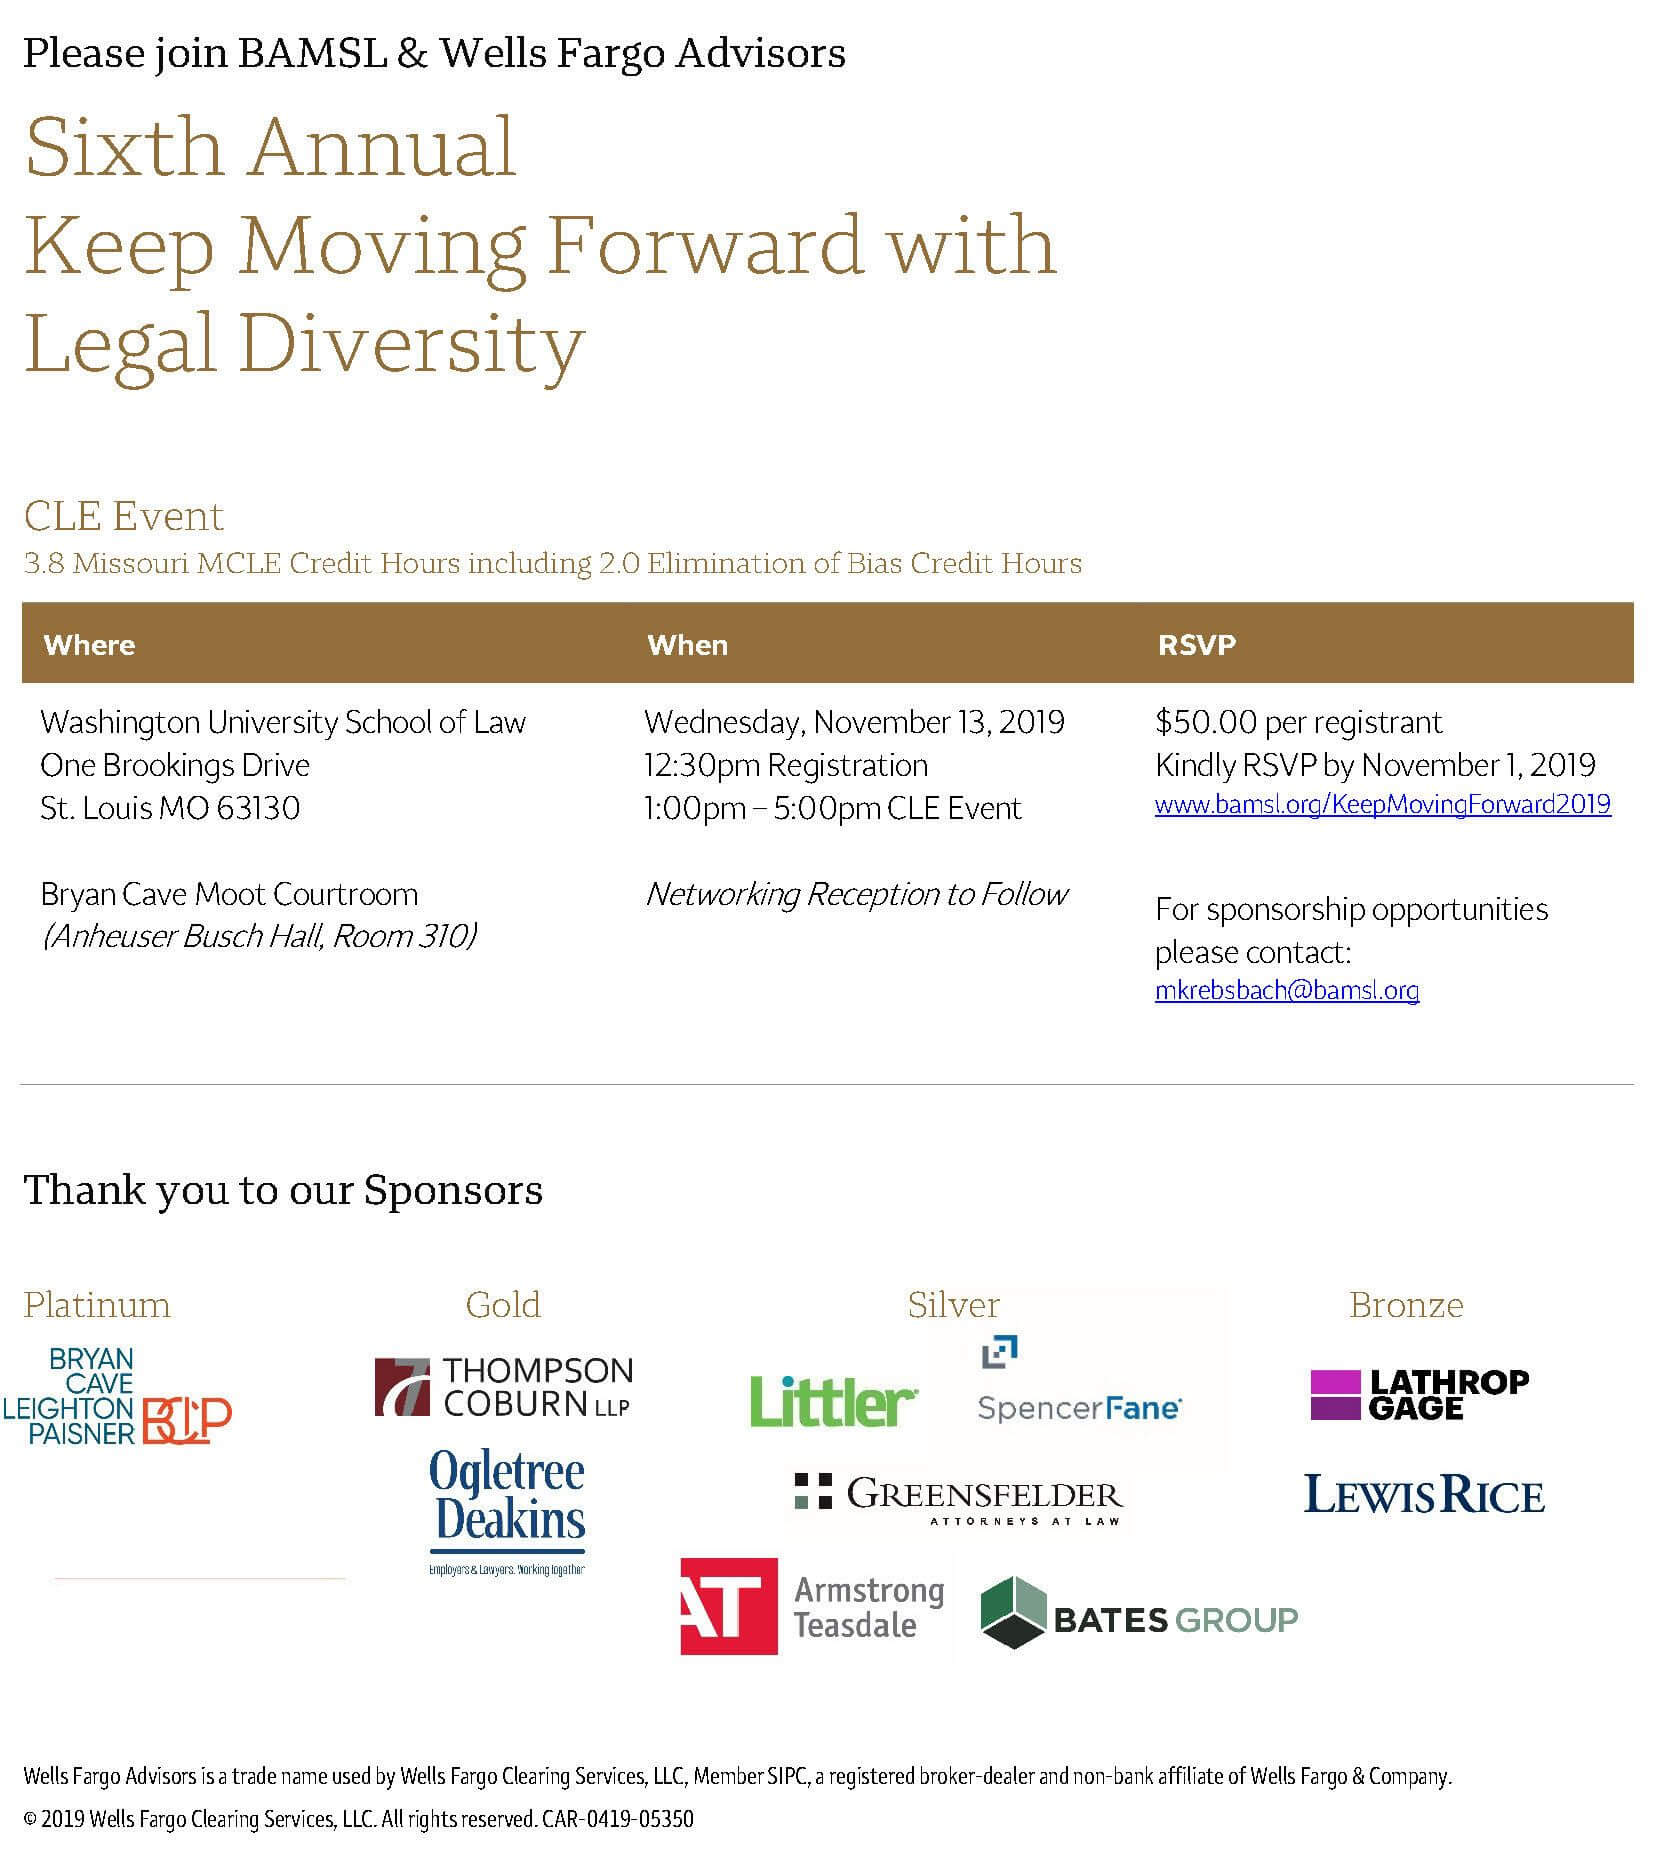 2019 Keep Moving Forward with Legal Diversity CLE flyer